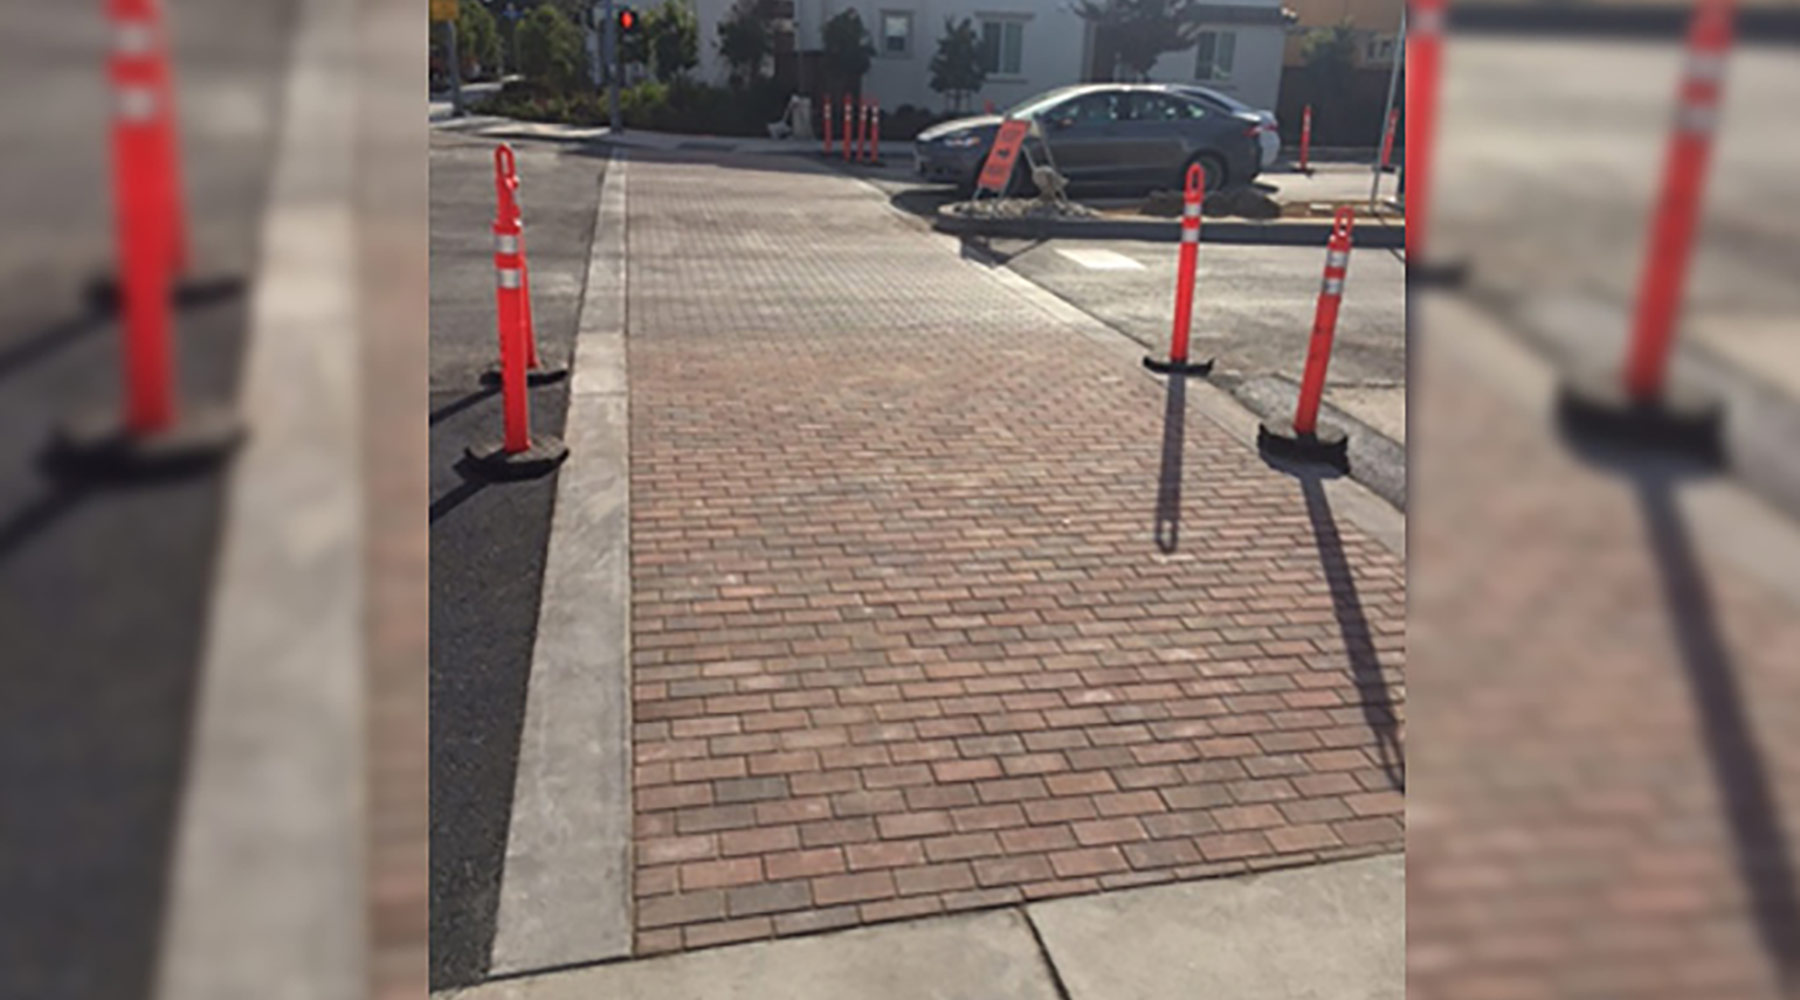 Feb 2018: East Iowa/Taaffe paver crosswalk complete with concrete bands.